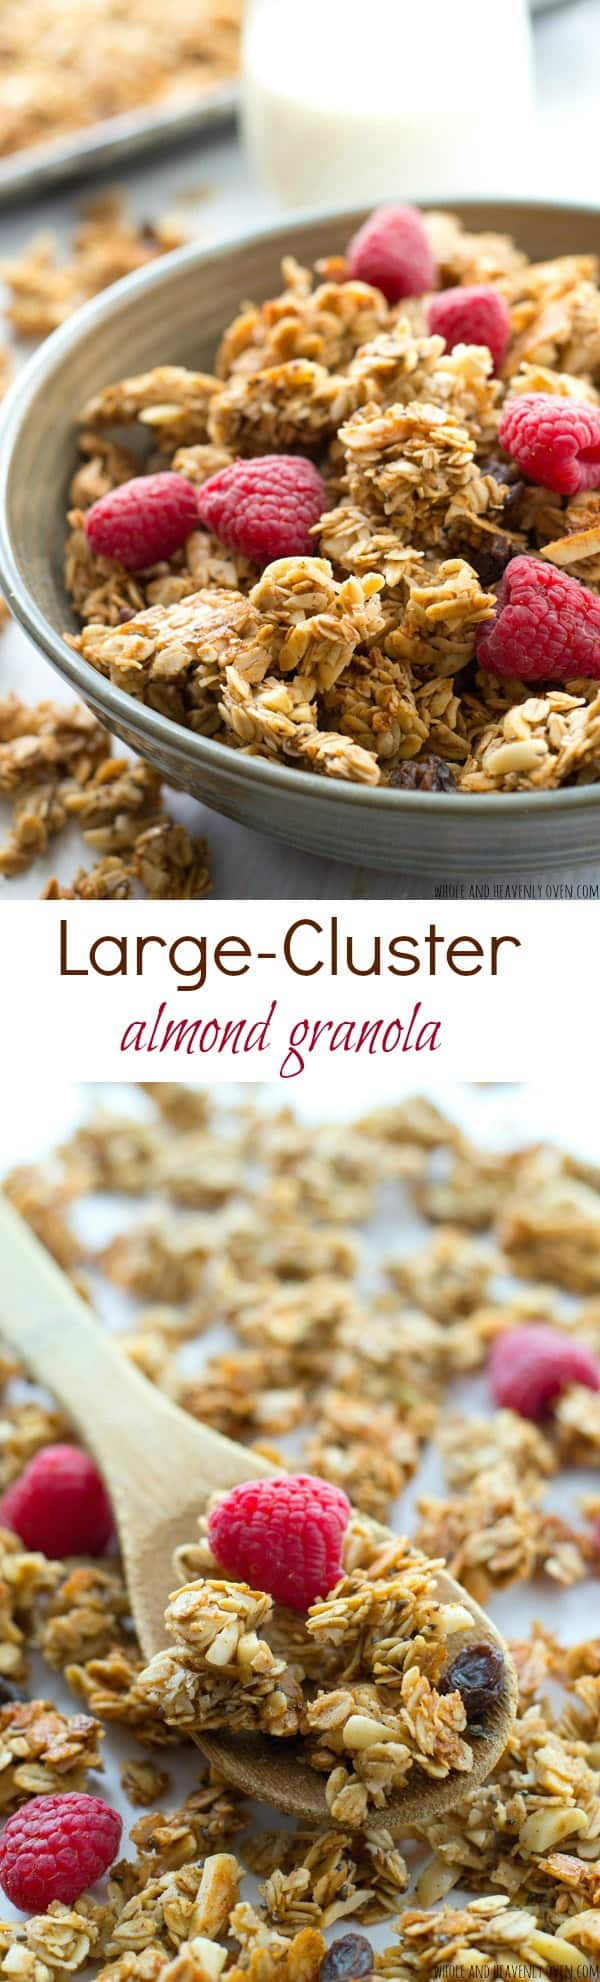 Learn all the secrets to making perfect large-cluster granola with this easy recipe! Perfectly huge and crunchy granola clusters with lots of almond flavor. @WholeHeavenly